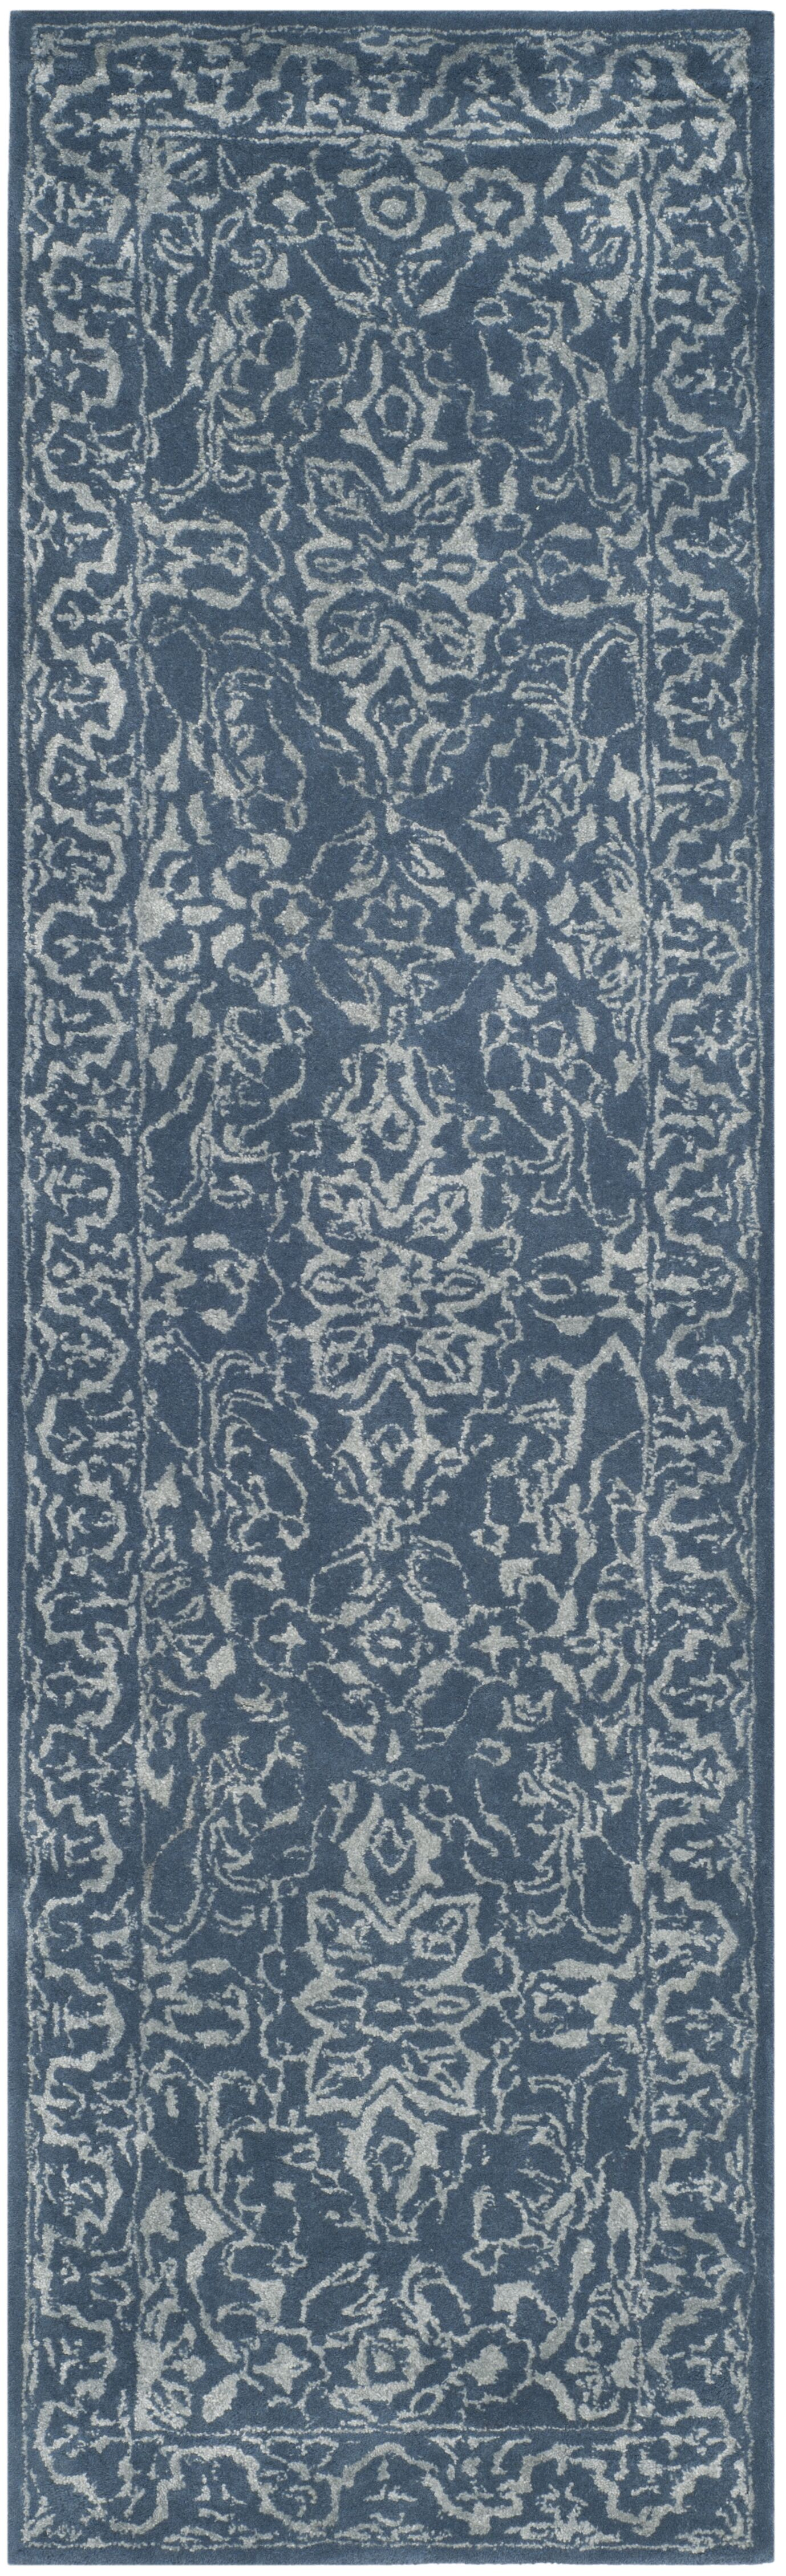 Wilkins Hand-Tufted Gray/Blue Area Rug Rug Size: Runner 2'3